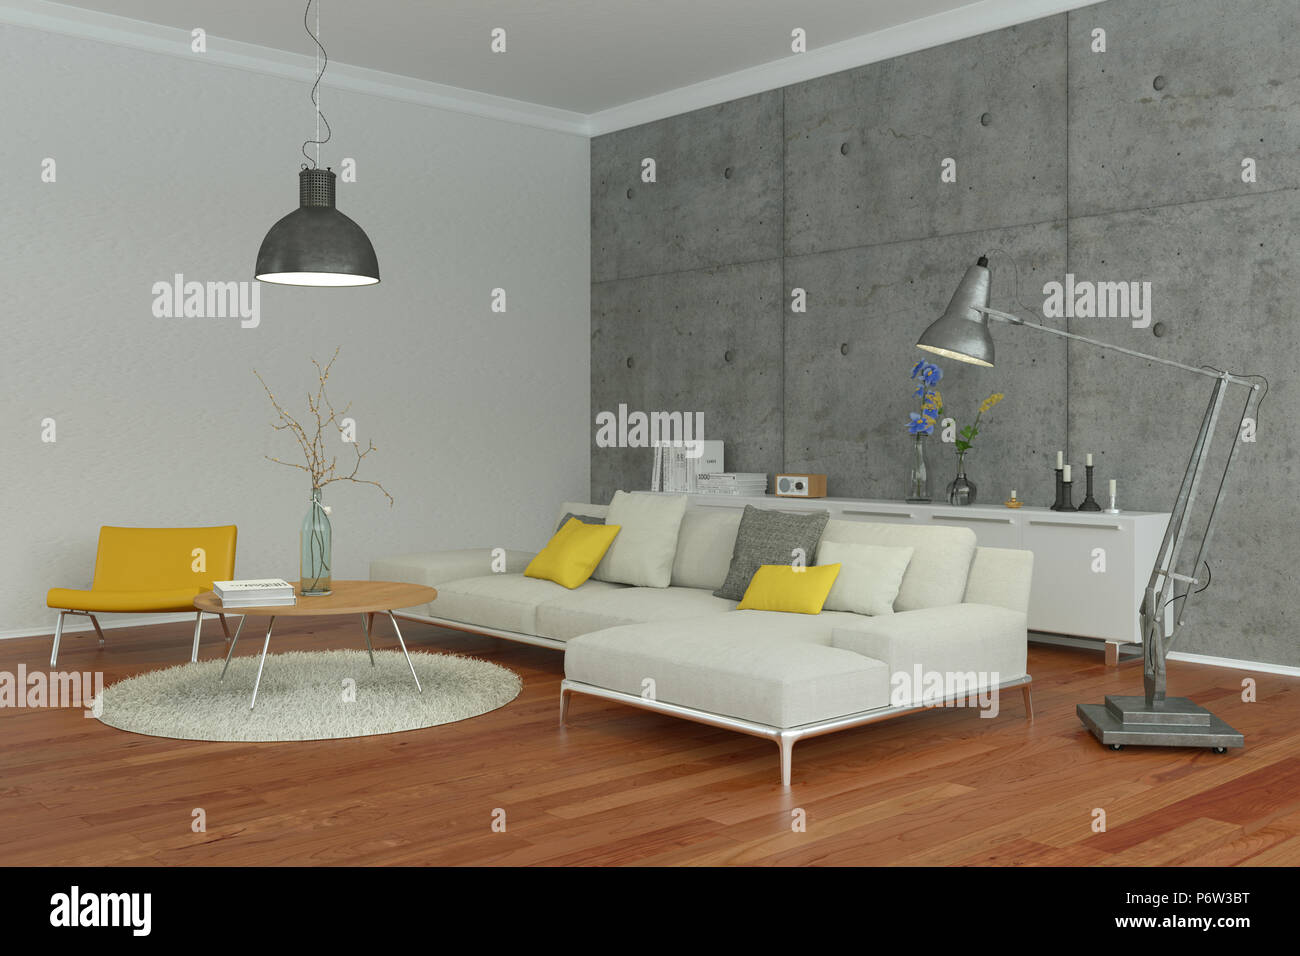 Modern Living Room Interior Design With Concrete Wall Stock Photo Alamy